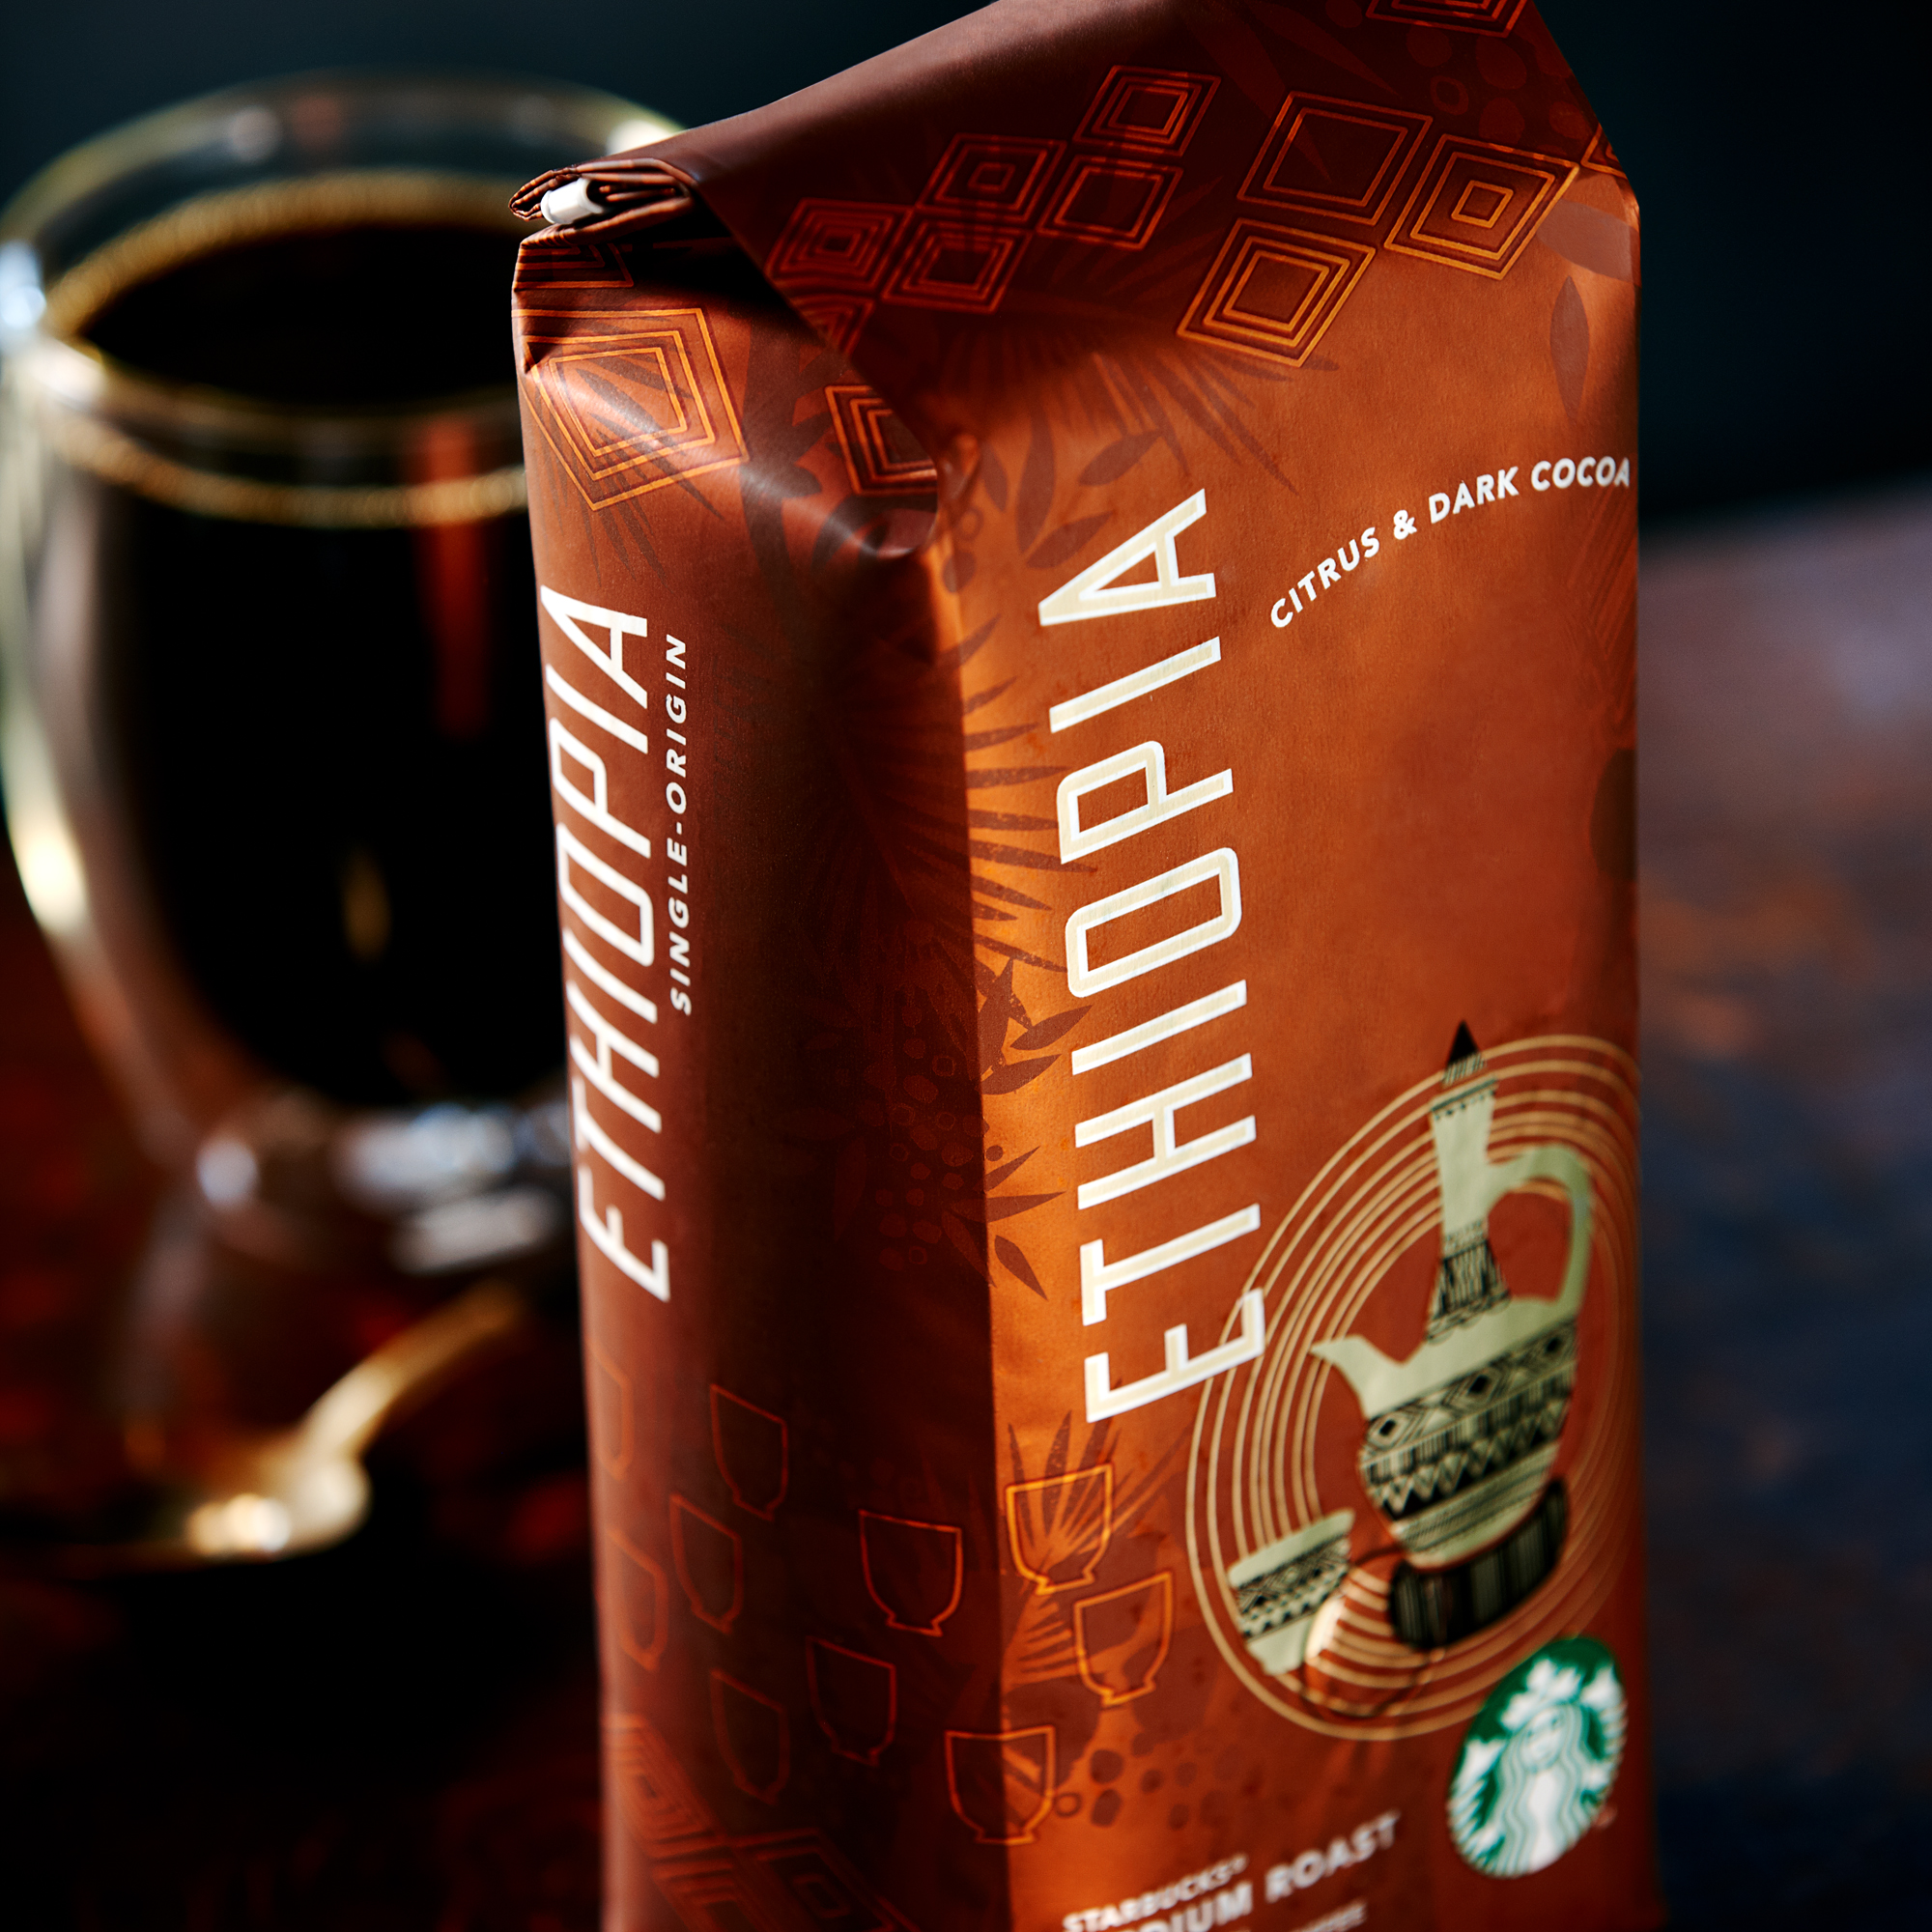 Celebrating World Coffee Day with Ethiopia Coffee {$25 Starbucks Gift Card Giveaway}